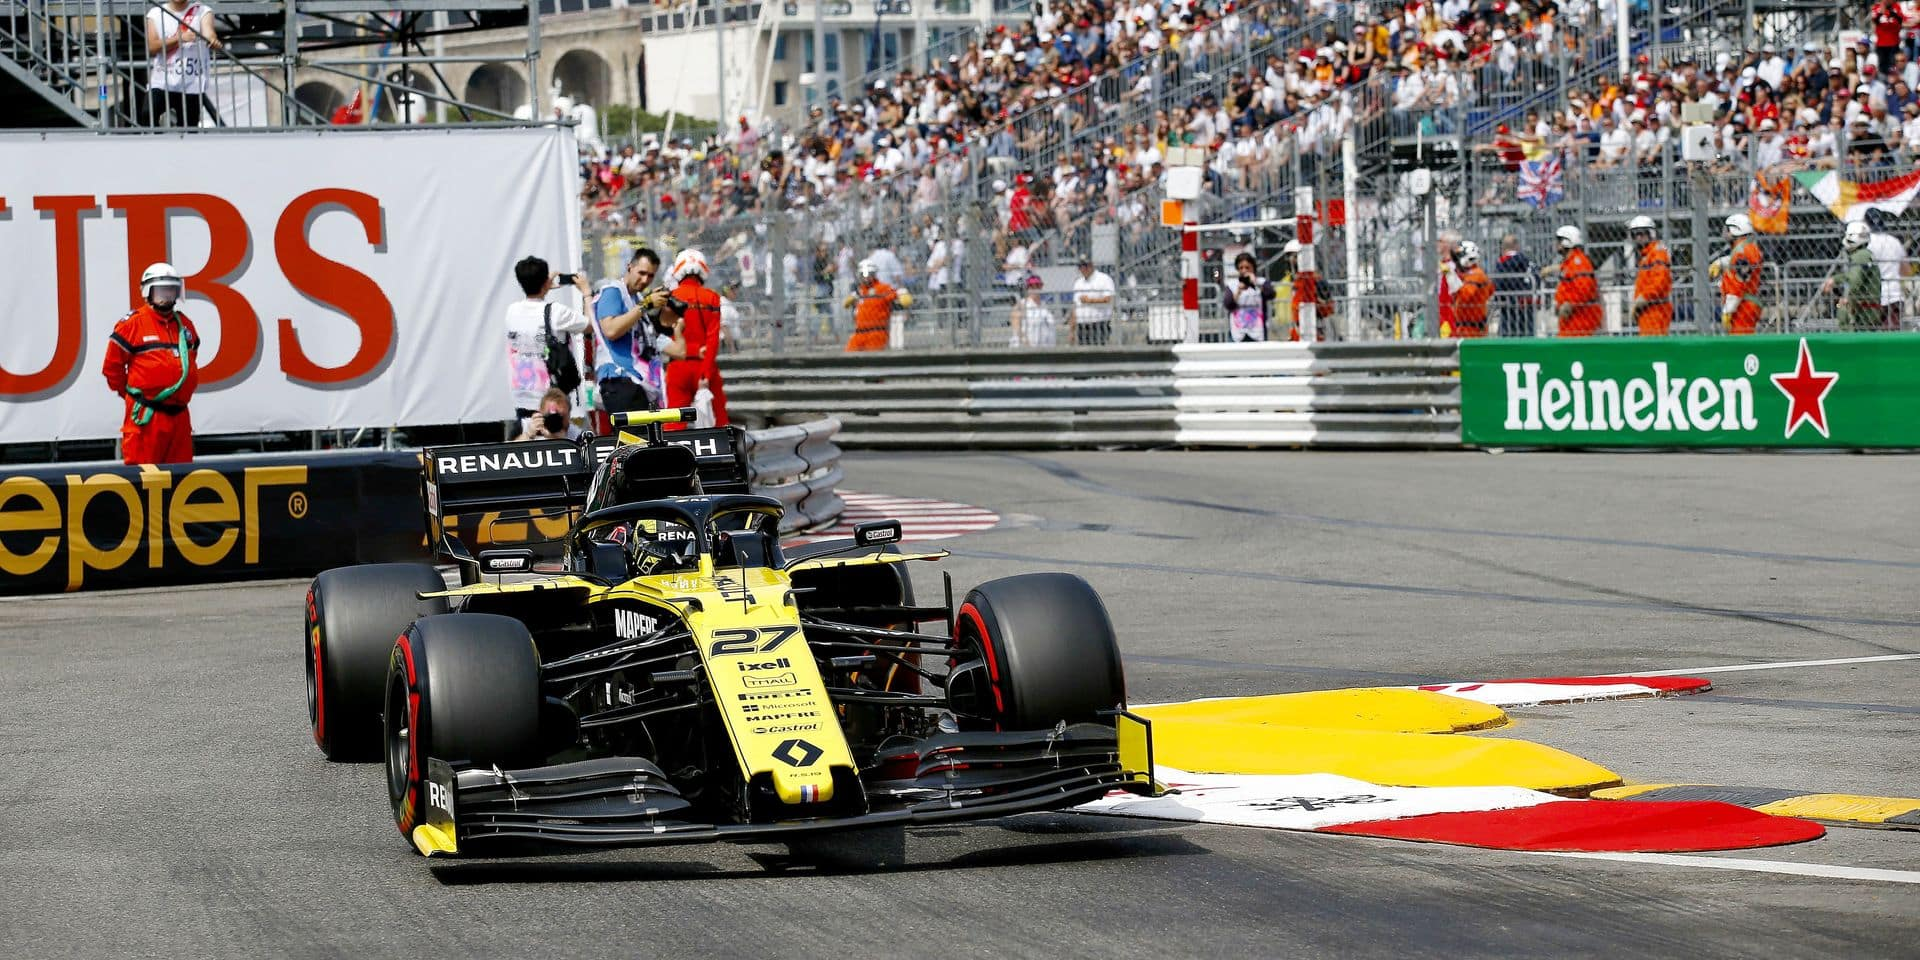 Motorsports: FIA Formula One World Championship 2019, Grand Prix of Monaco